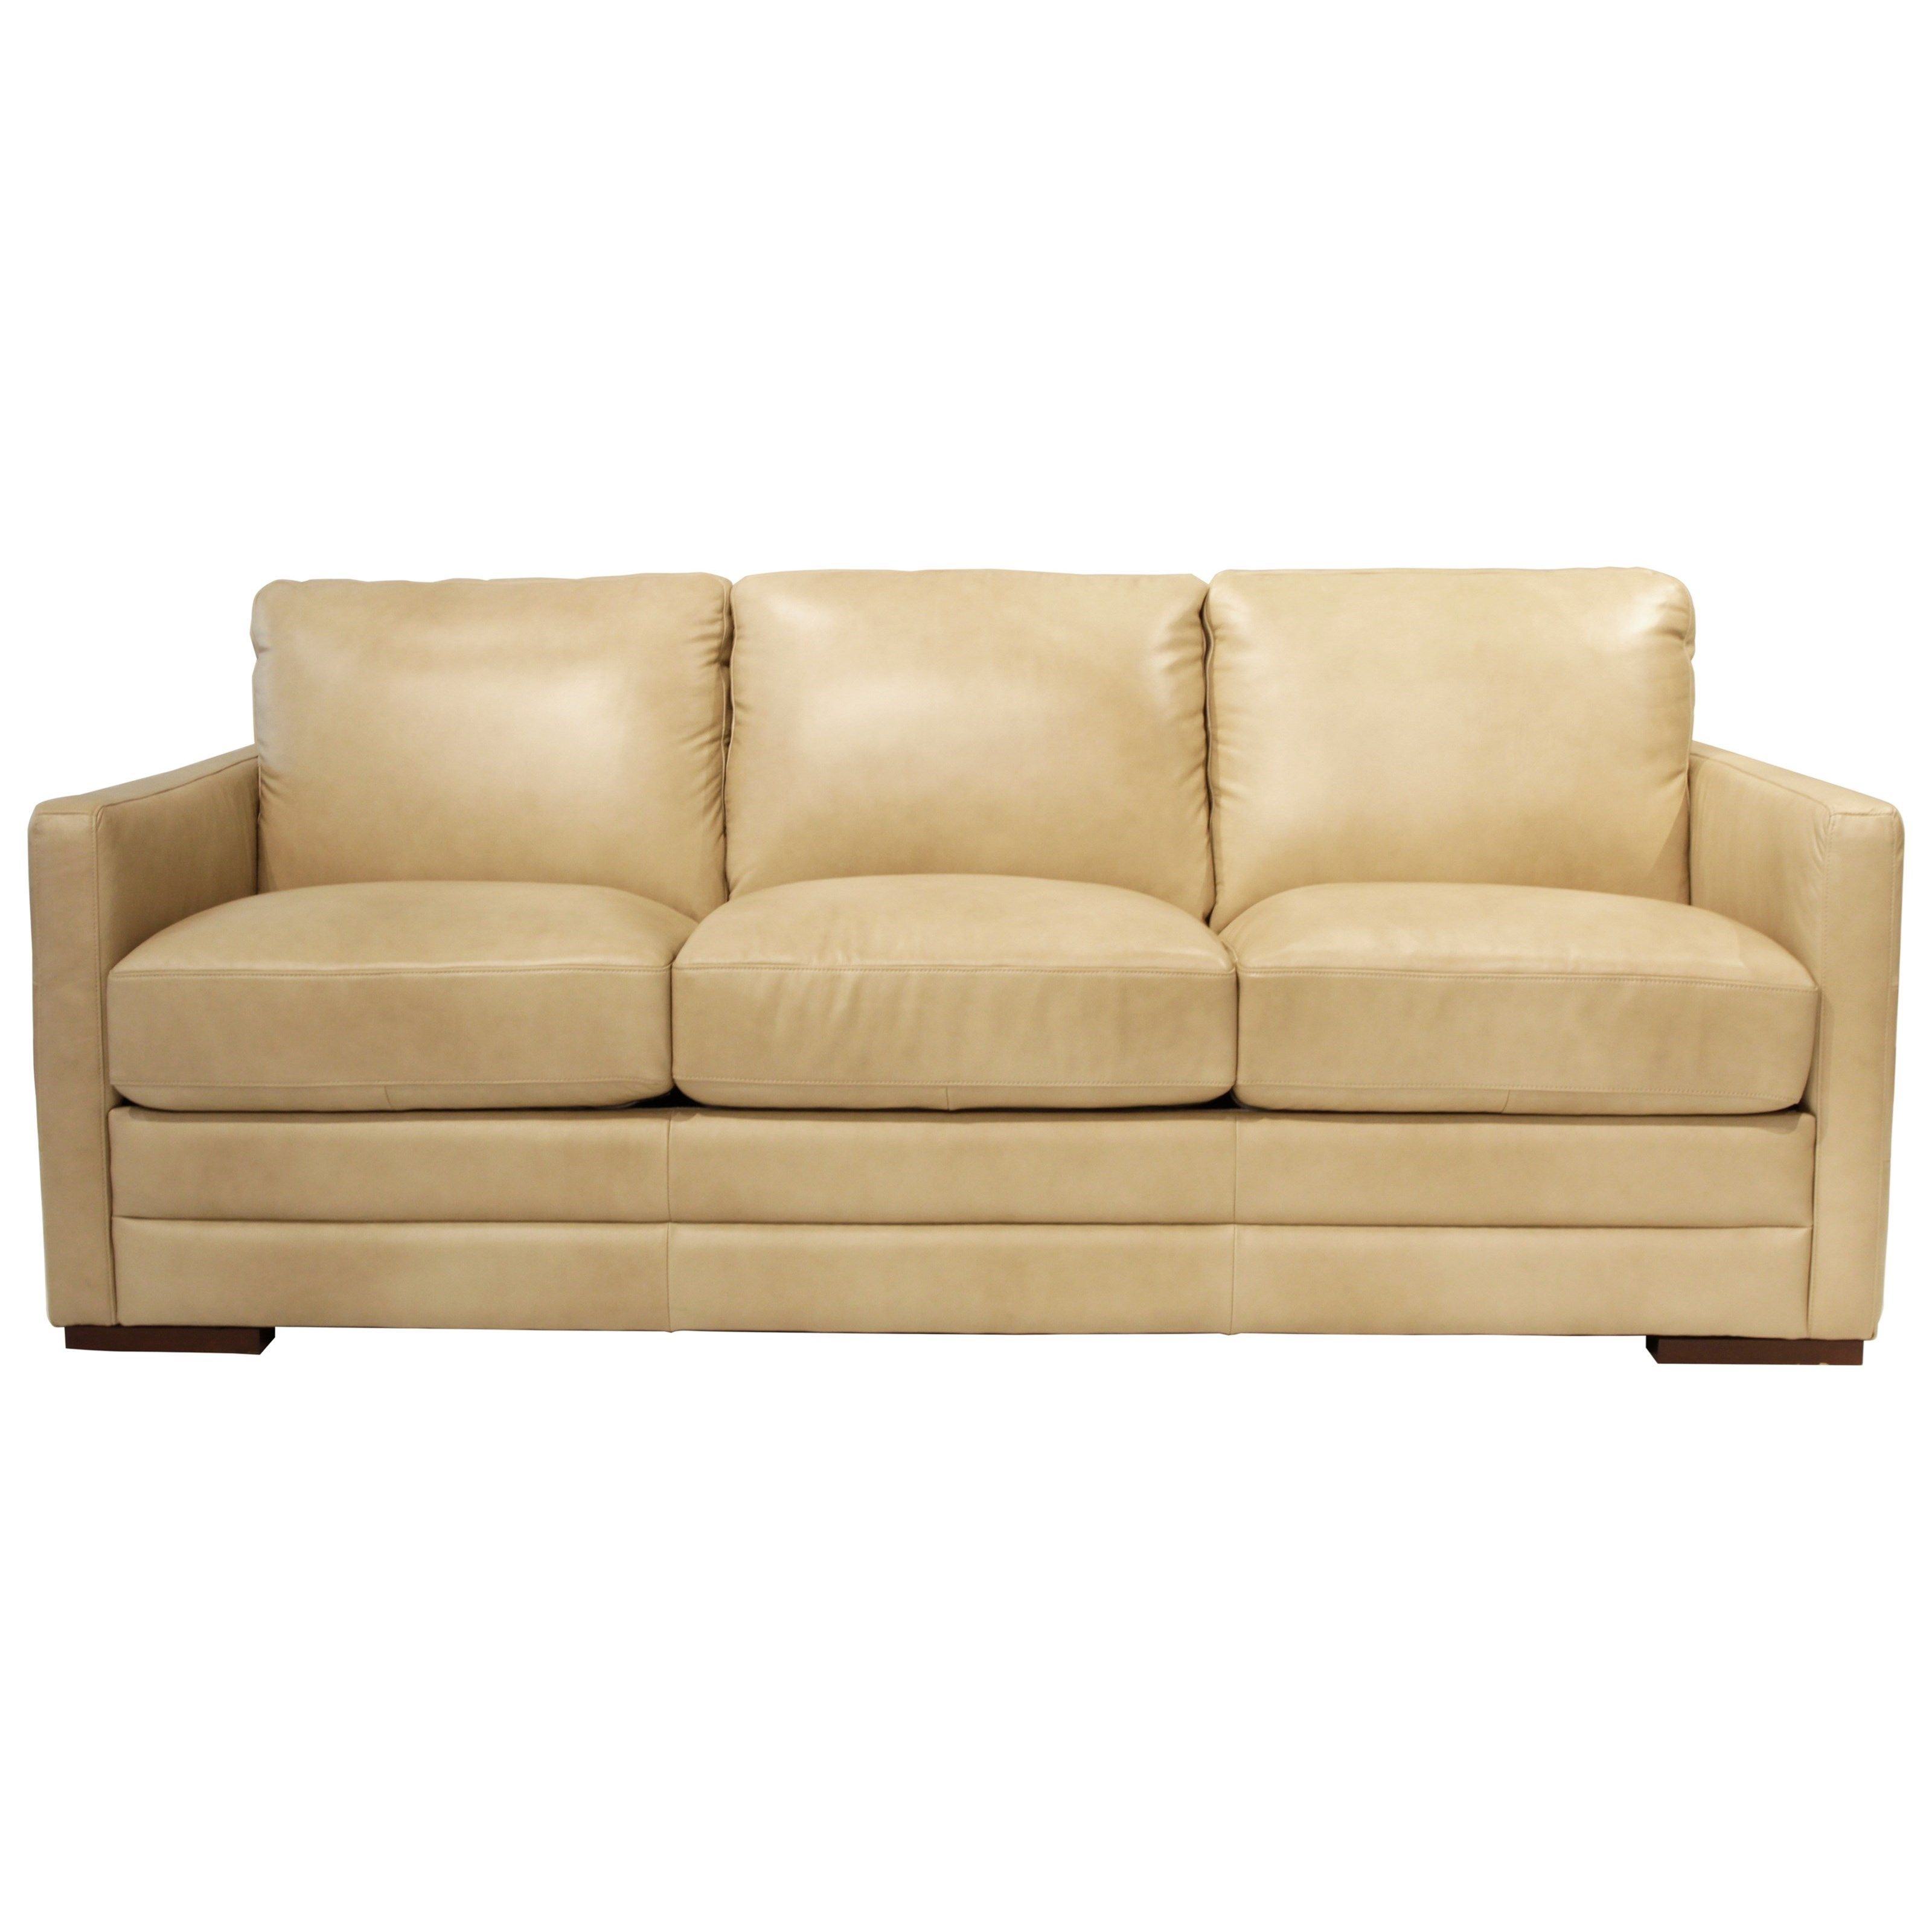 Monica Queen Sofabed By Futura Leather With Images Sofa Bed